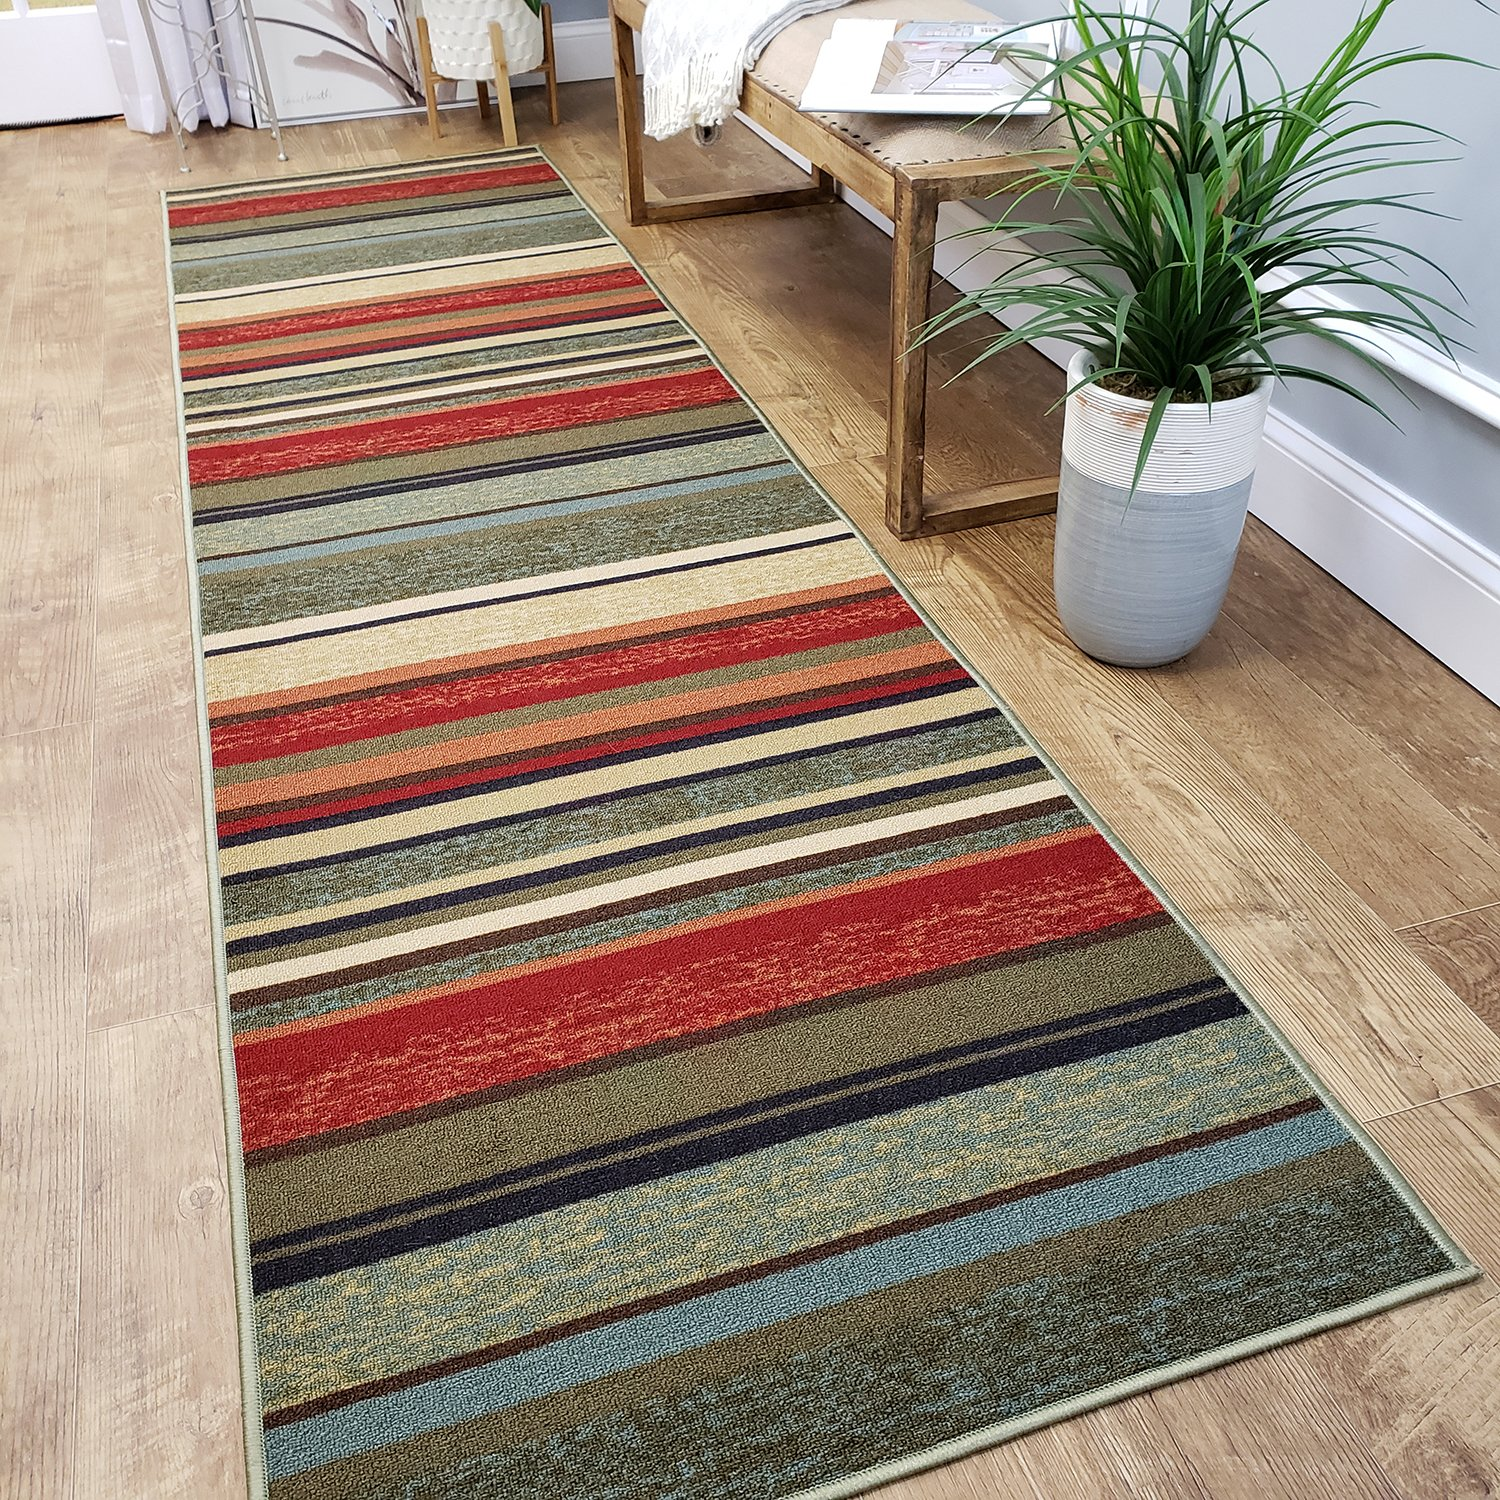 CUSTOM CUT 31-inch Wide by 4-feet Long Runner, Multicolor Stripes Non Slip, Non-Skid, Rubber Backed Stair, Hallway, Kitchen, Carpet Runner Rug - Choose your Width by Length